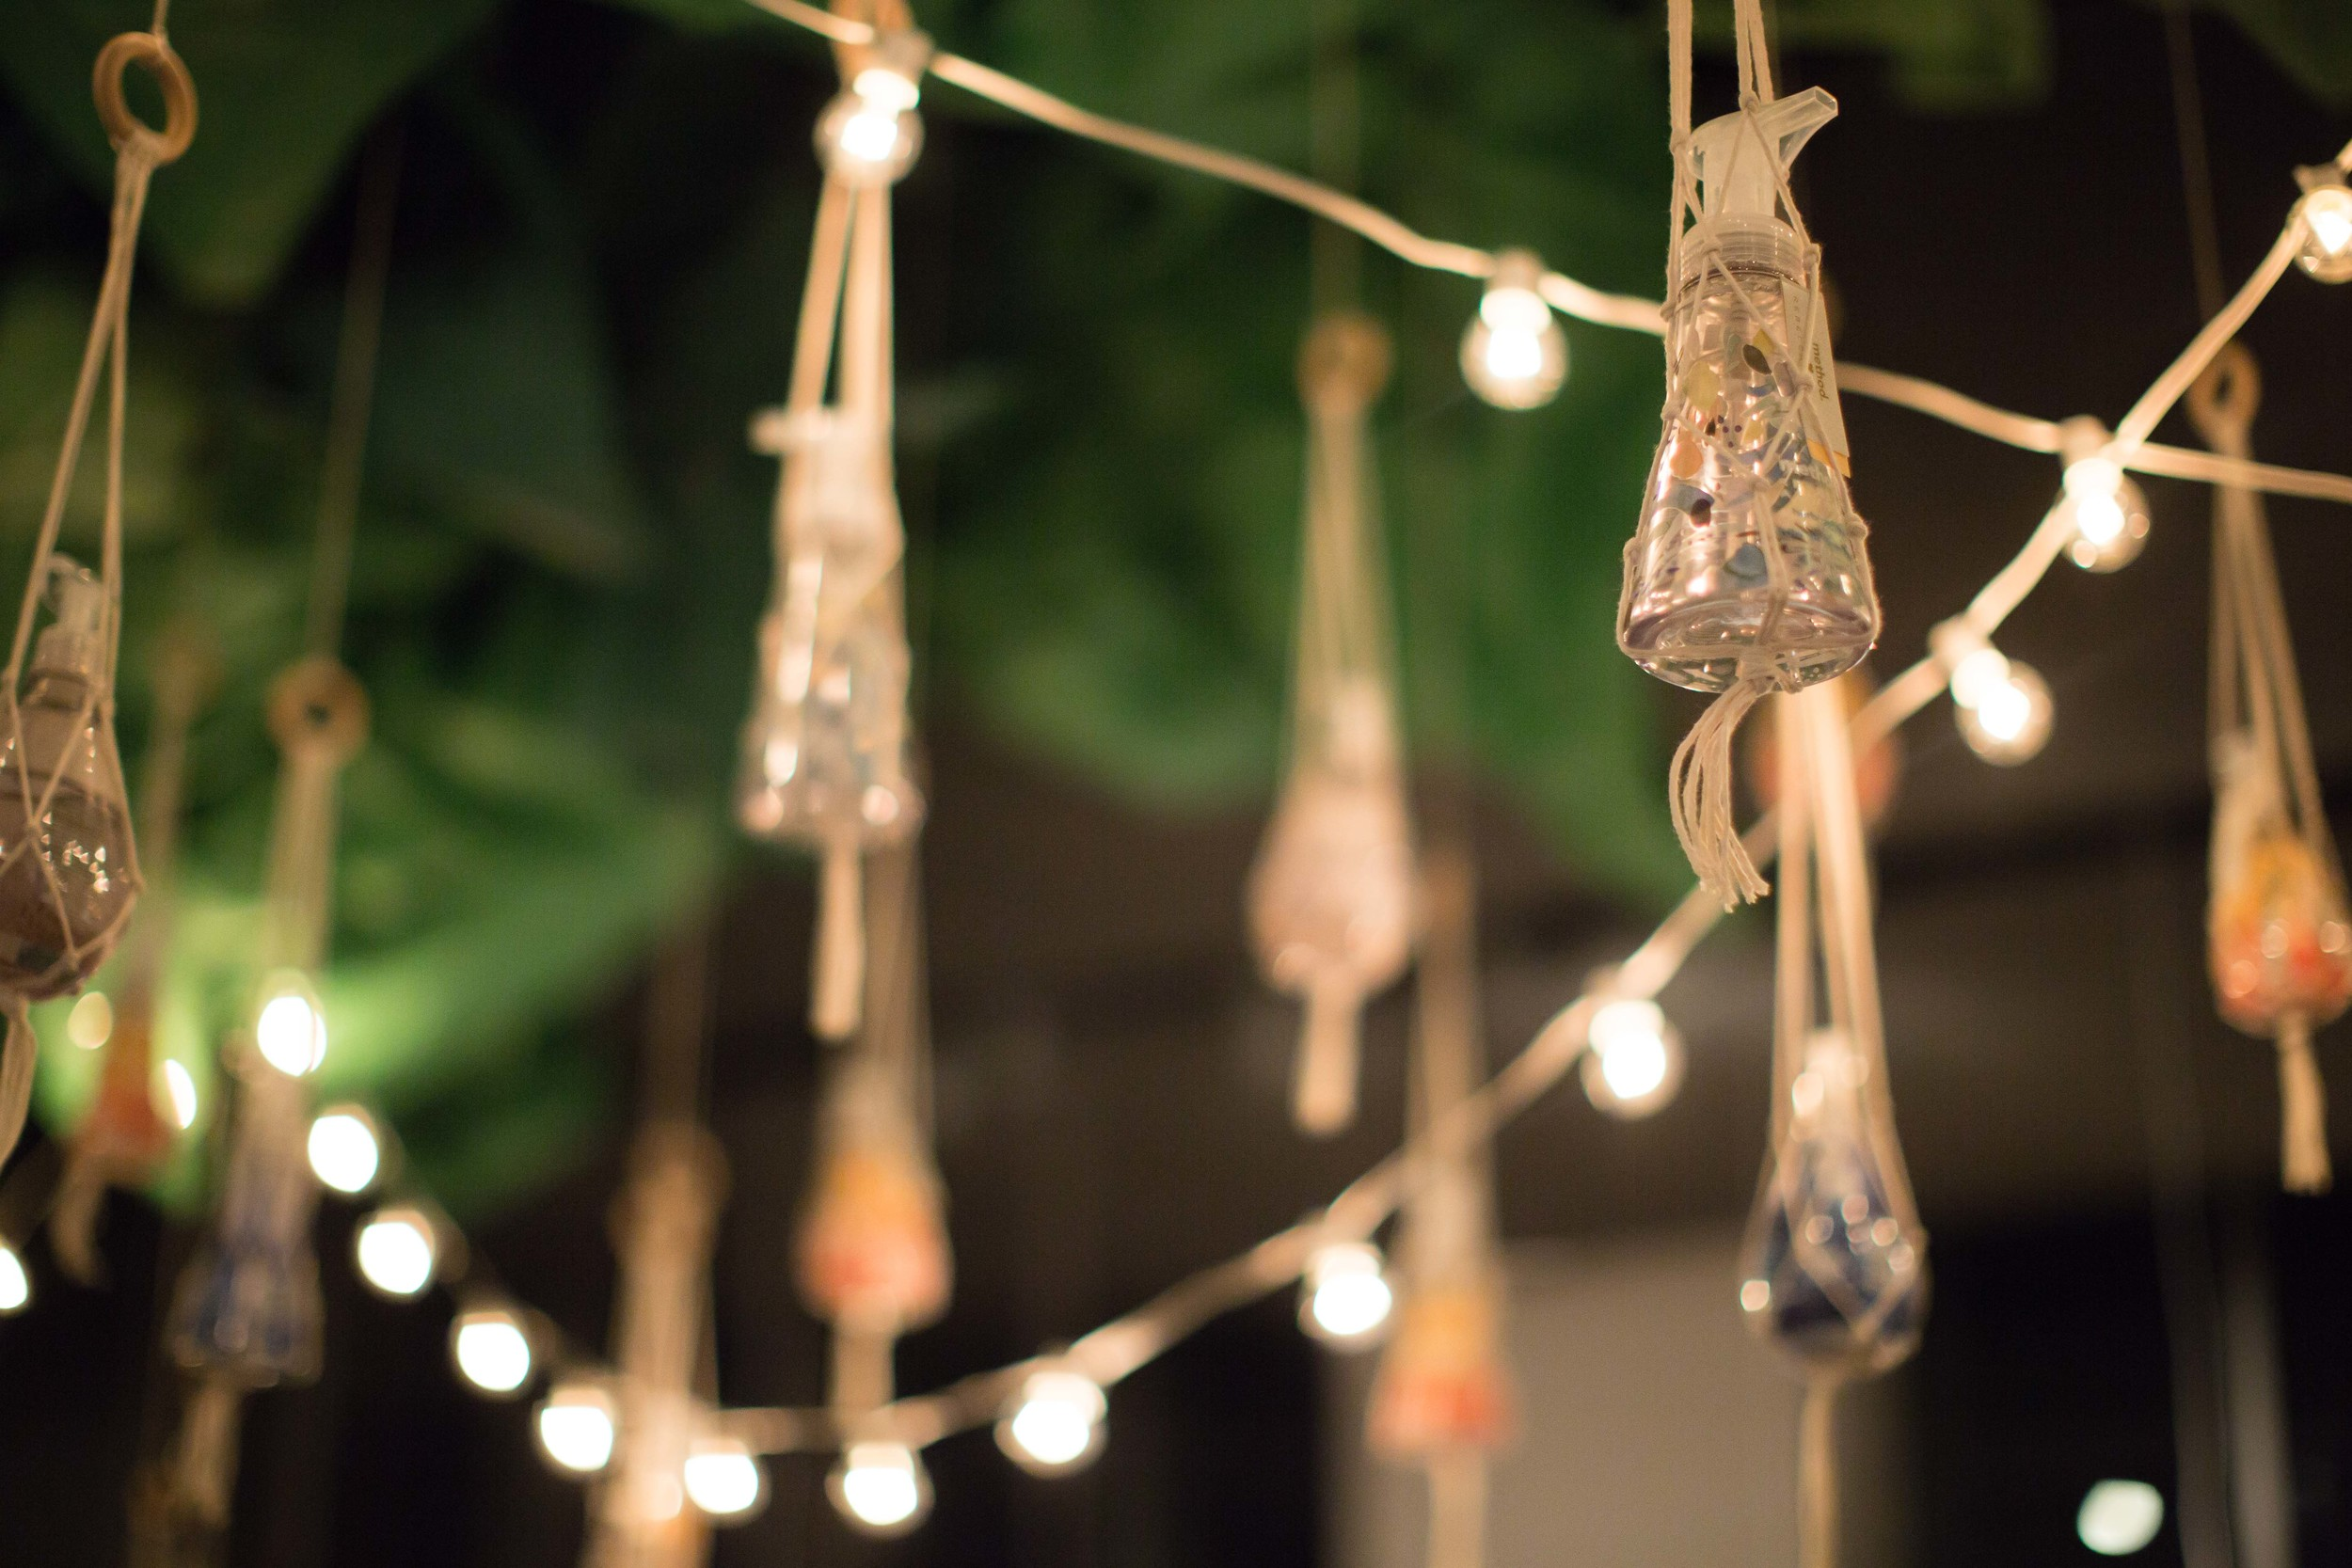 Product infused decor at Method x Rebecca Atwood - New York Editor's Event